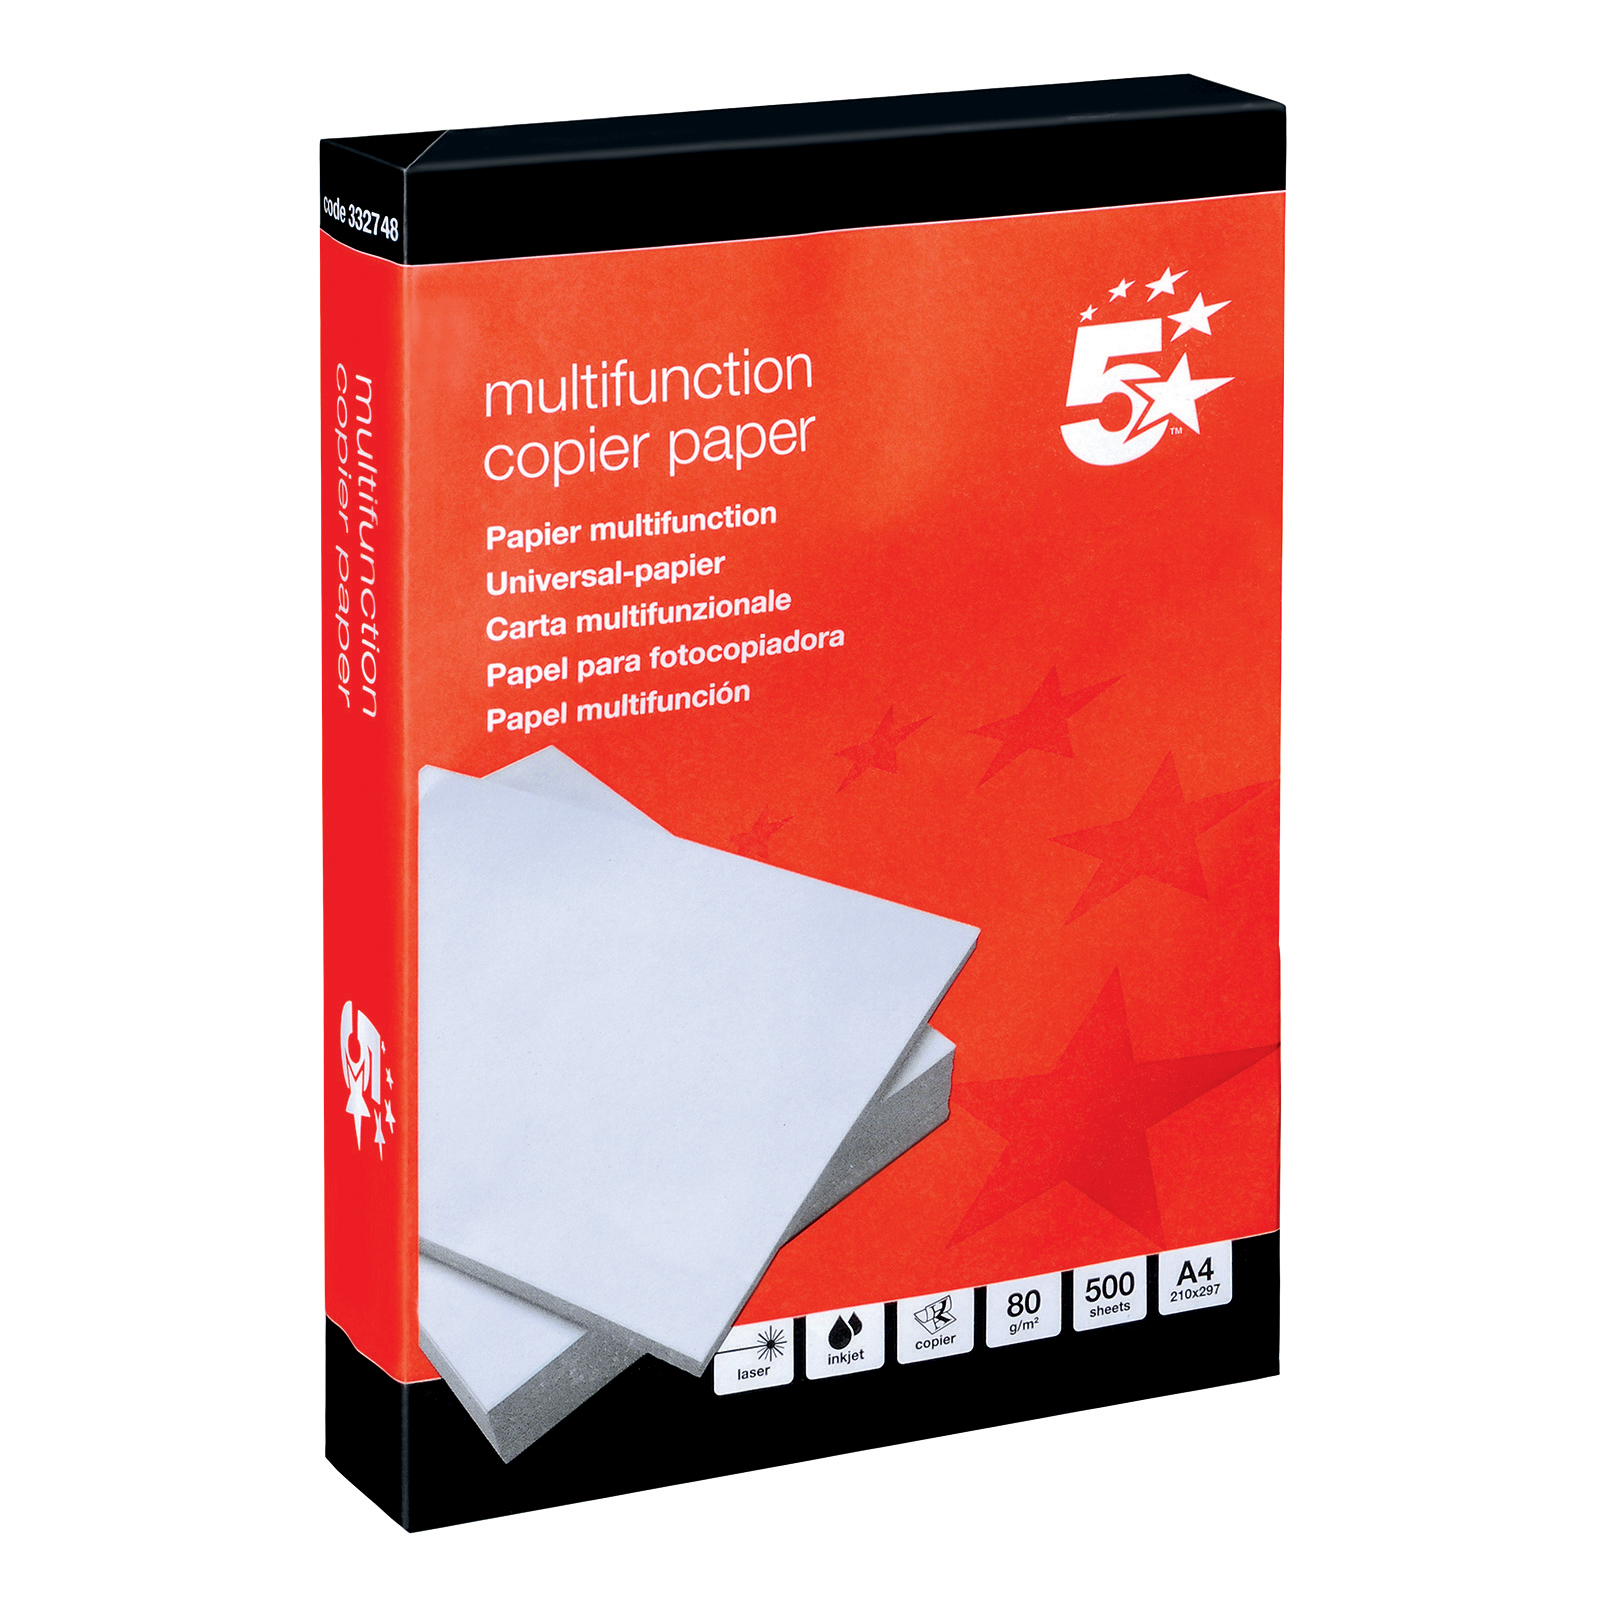 A4 5 Star Office Copier Paper Multifunctional Ream-Wrapped 80gsm A4 White [500 Sheets]